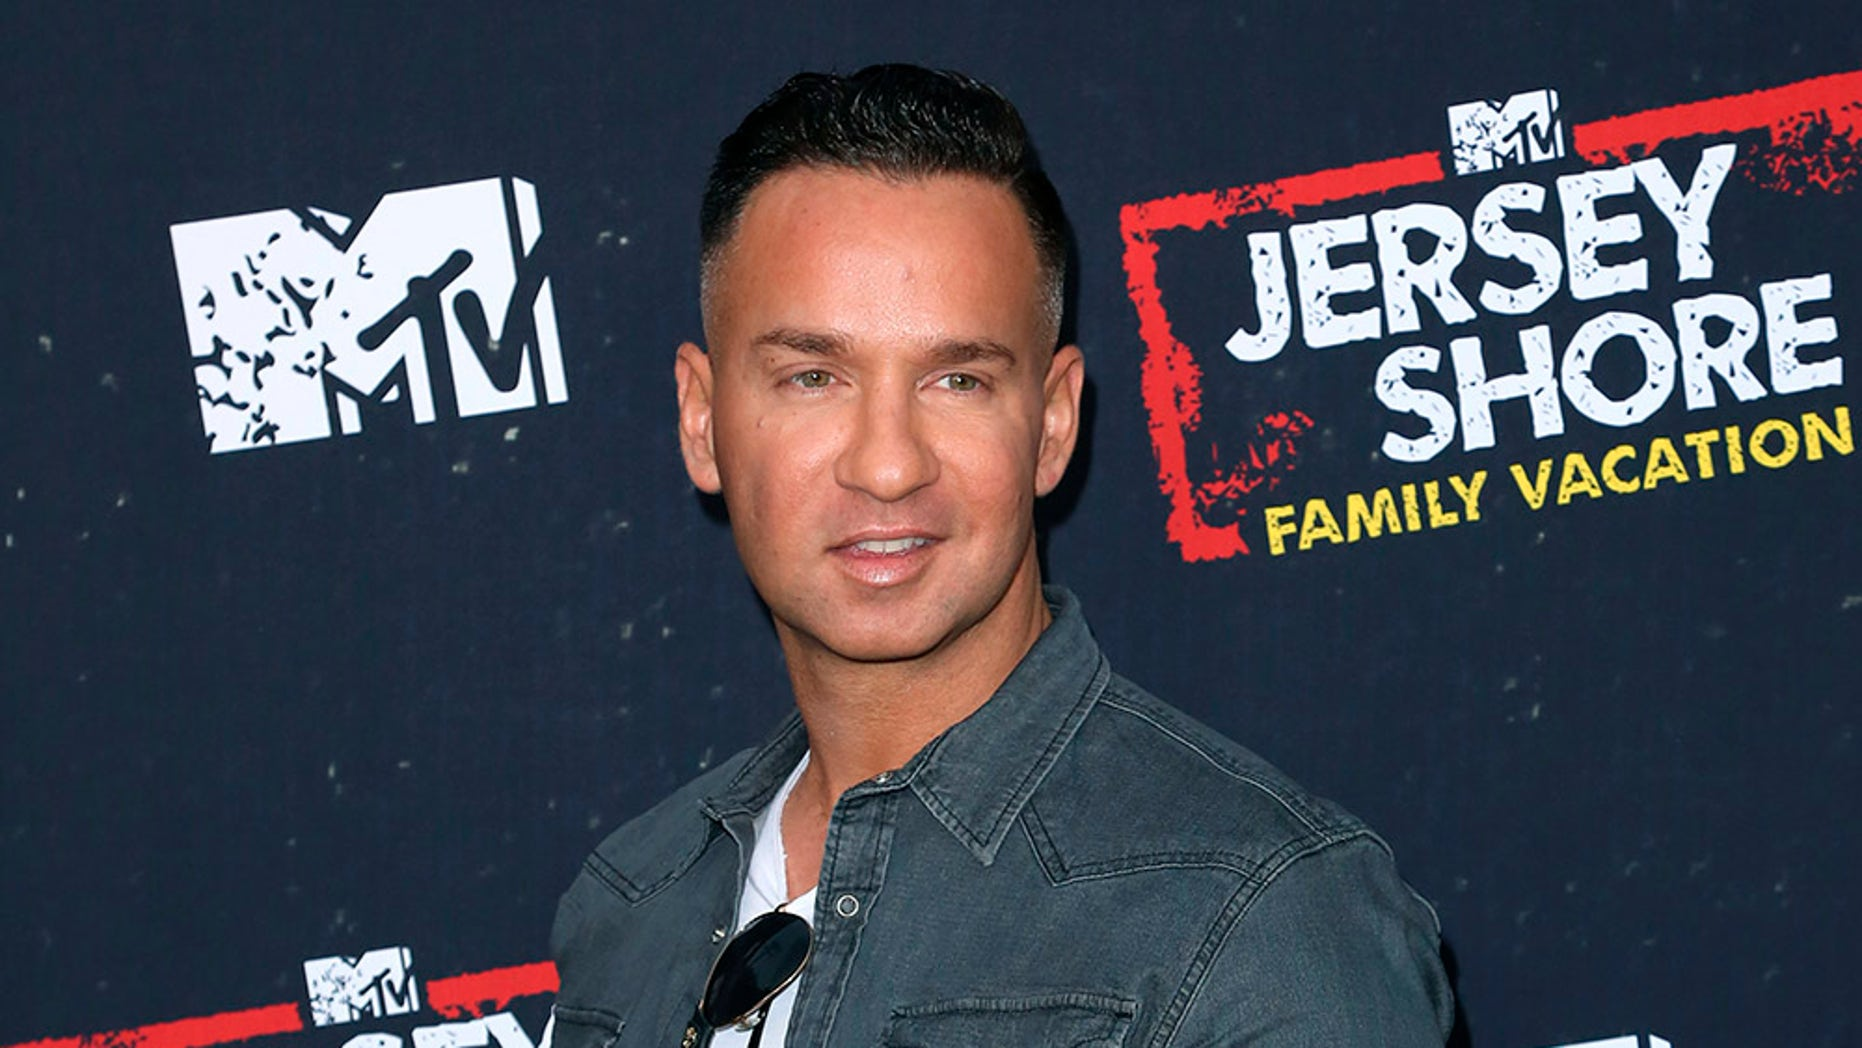 "FILE - In this March 29, 2018 file photo, Mike ""The Situation"" Sorrentino arrives at the ""Jersey Shore Family Vacation"" premiere in Los Angeles. Sorrentino is seeking probation when he's sentenced Friday on tax charges, while prosecutors want a sentence of 14 months. Sorrentino pleaded guilty in January to concealing his income in 2011 by making cash deposits that wouldn't trigger federal reporting requirements. He and his brother were charged in 2014 with multiple tax offenses related to nearly $9 million in income. (Photo by Willy Sanjuan/Invision/AP, File)"